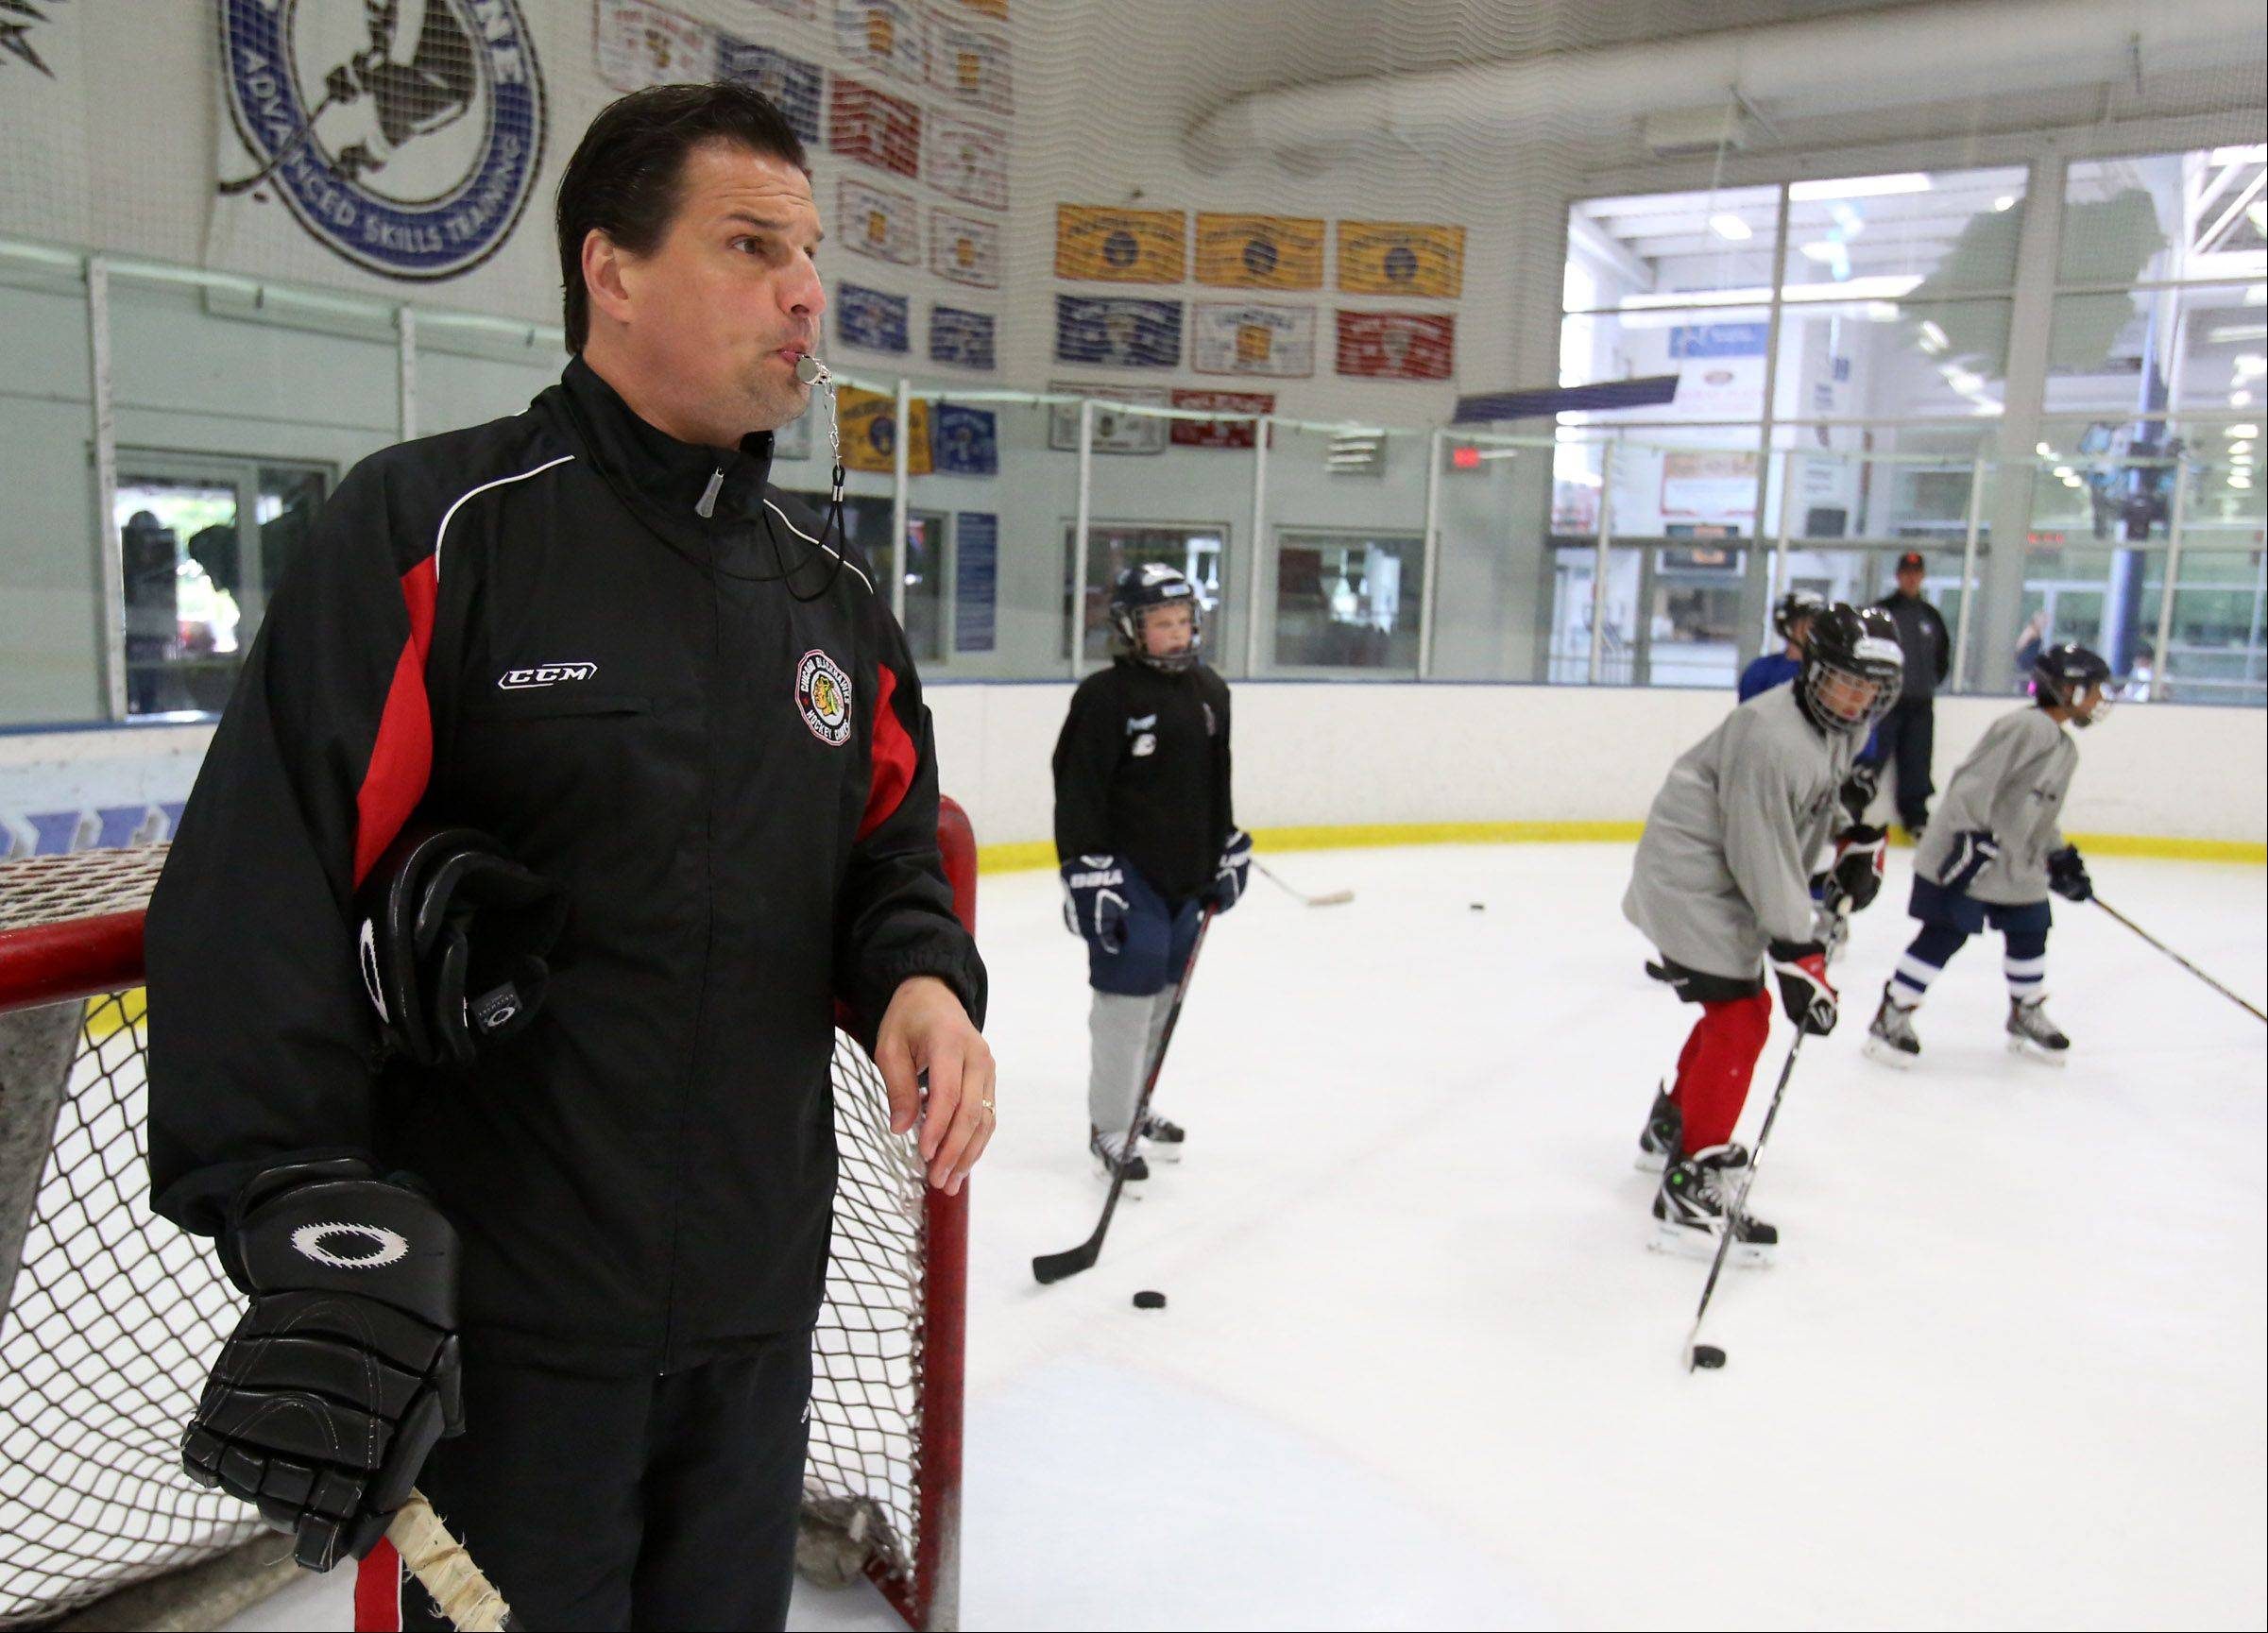 PeWee and Bantam boys receive instruction Friday from Chicago Blackhawks television analyst Eddie Olczyk at hockey camp Friday at Glacier Ice Arena in Vernon Hills.